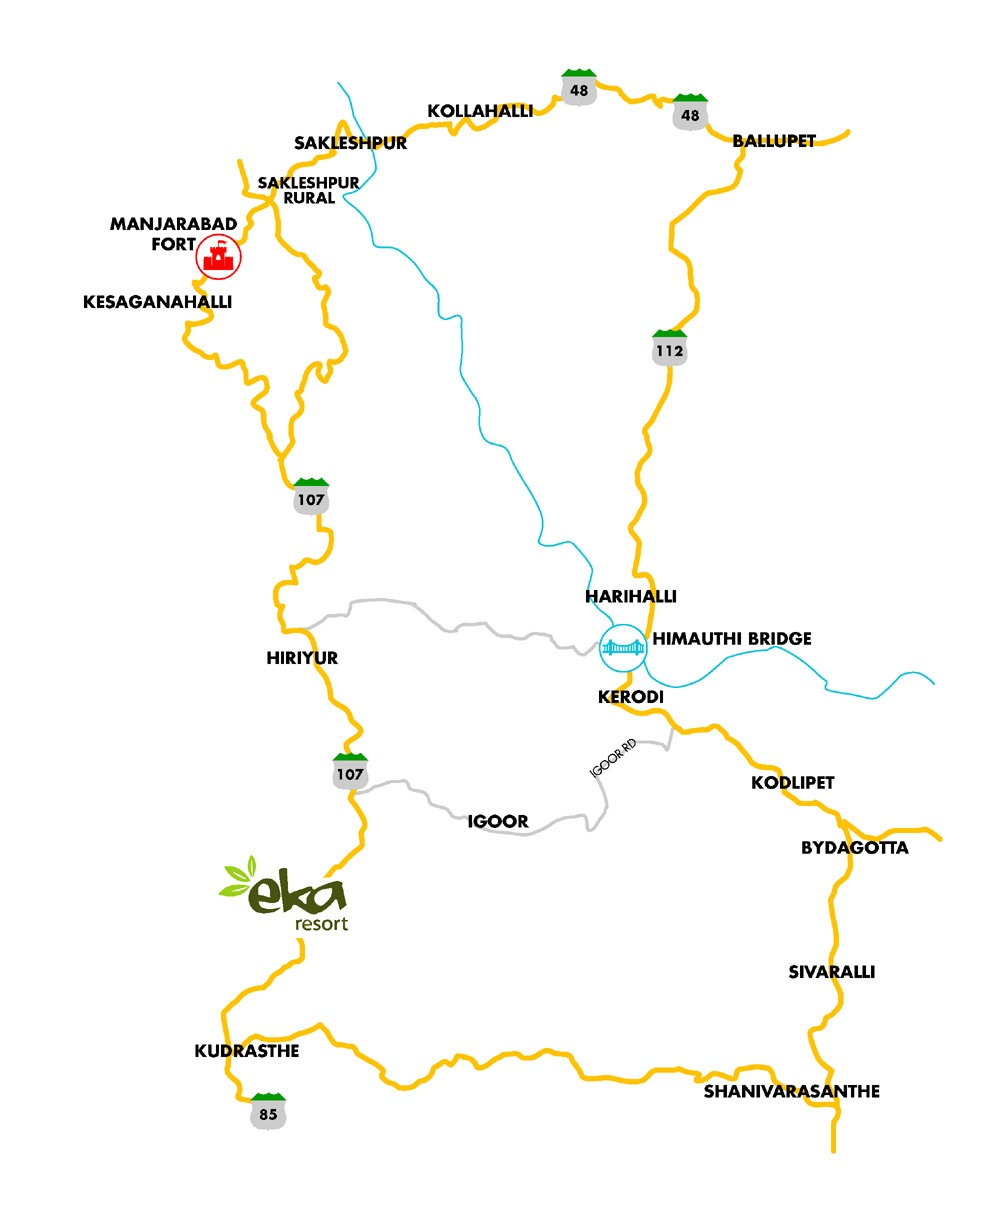 Sakleshpur Eka Resorts Roadmap